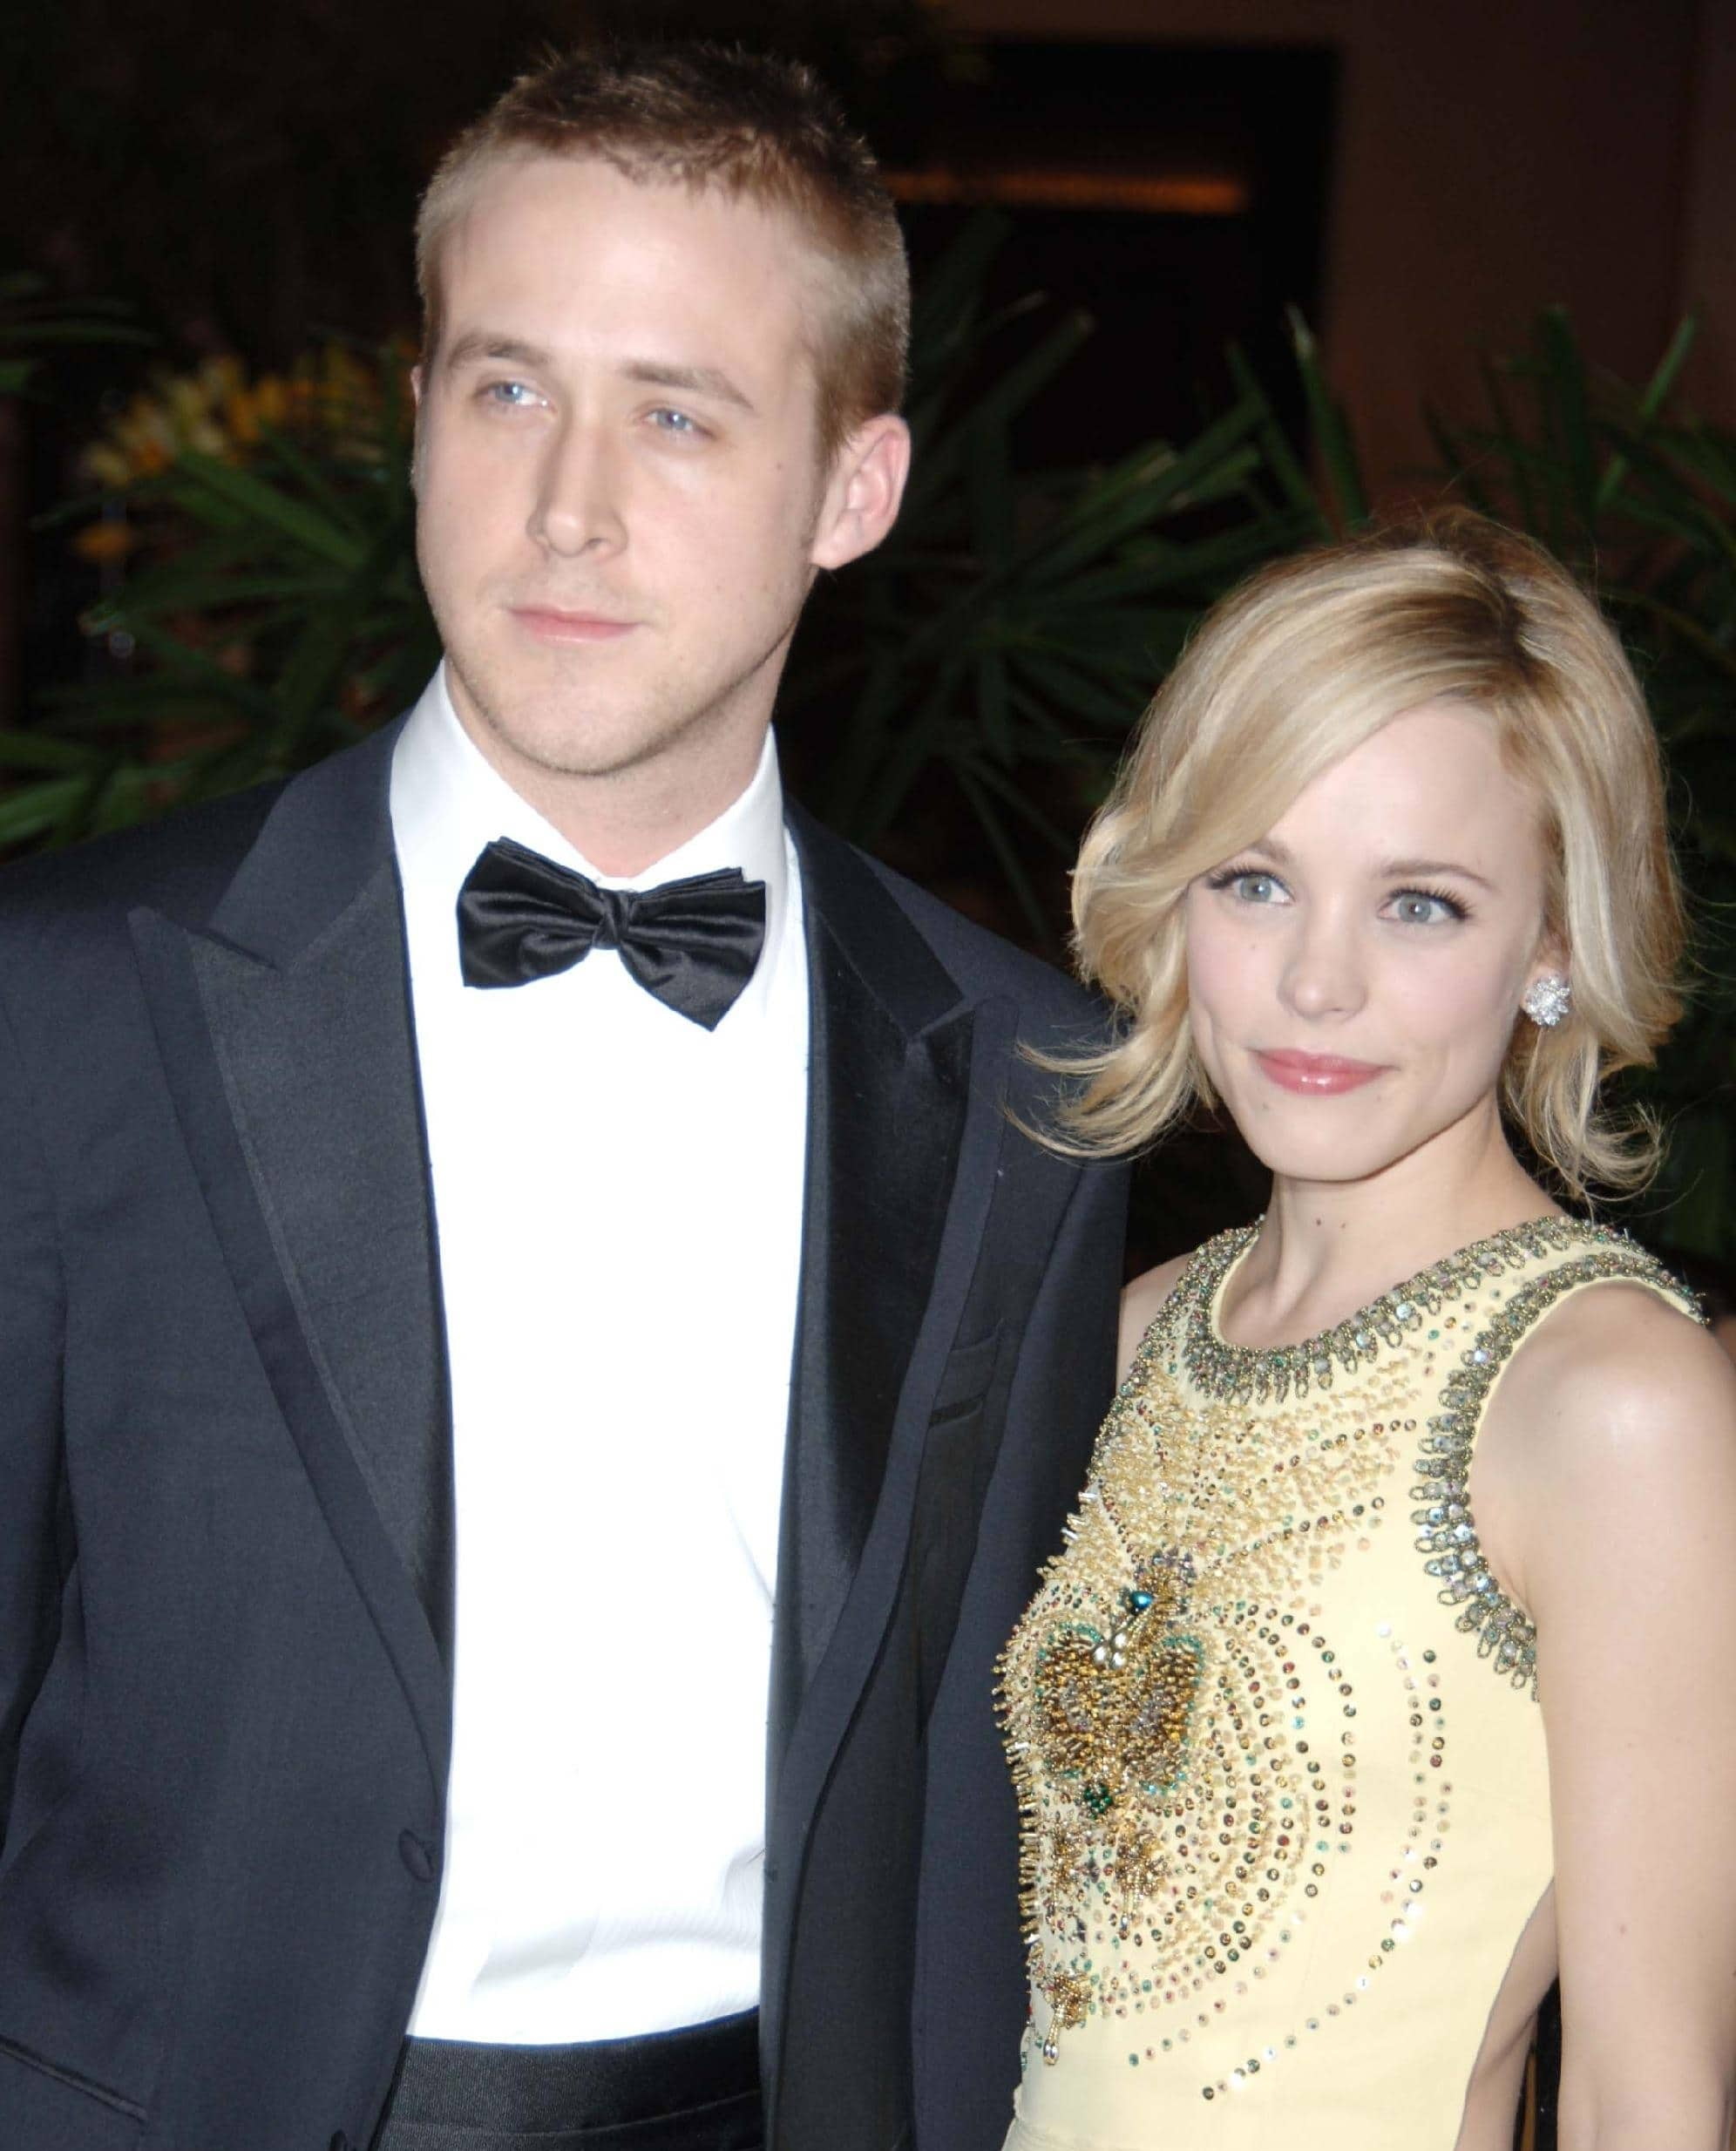 Rachel McAdams and Ryan Gosling met on the set of The Notebook and started dating in 2005